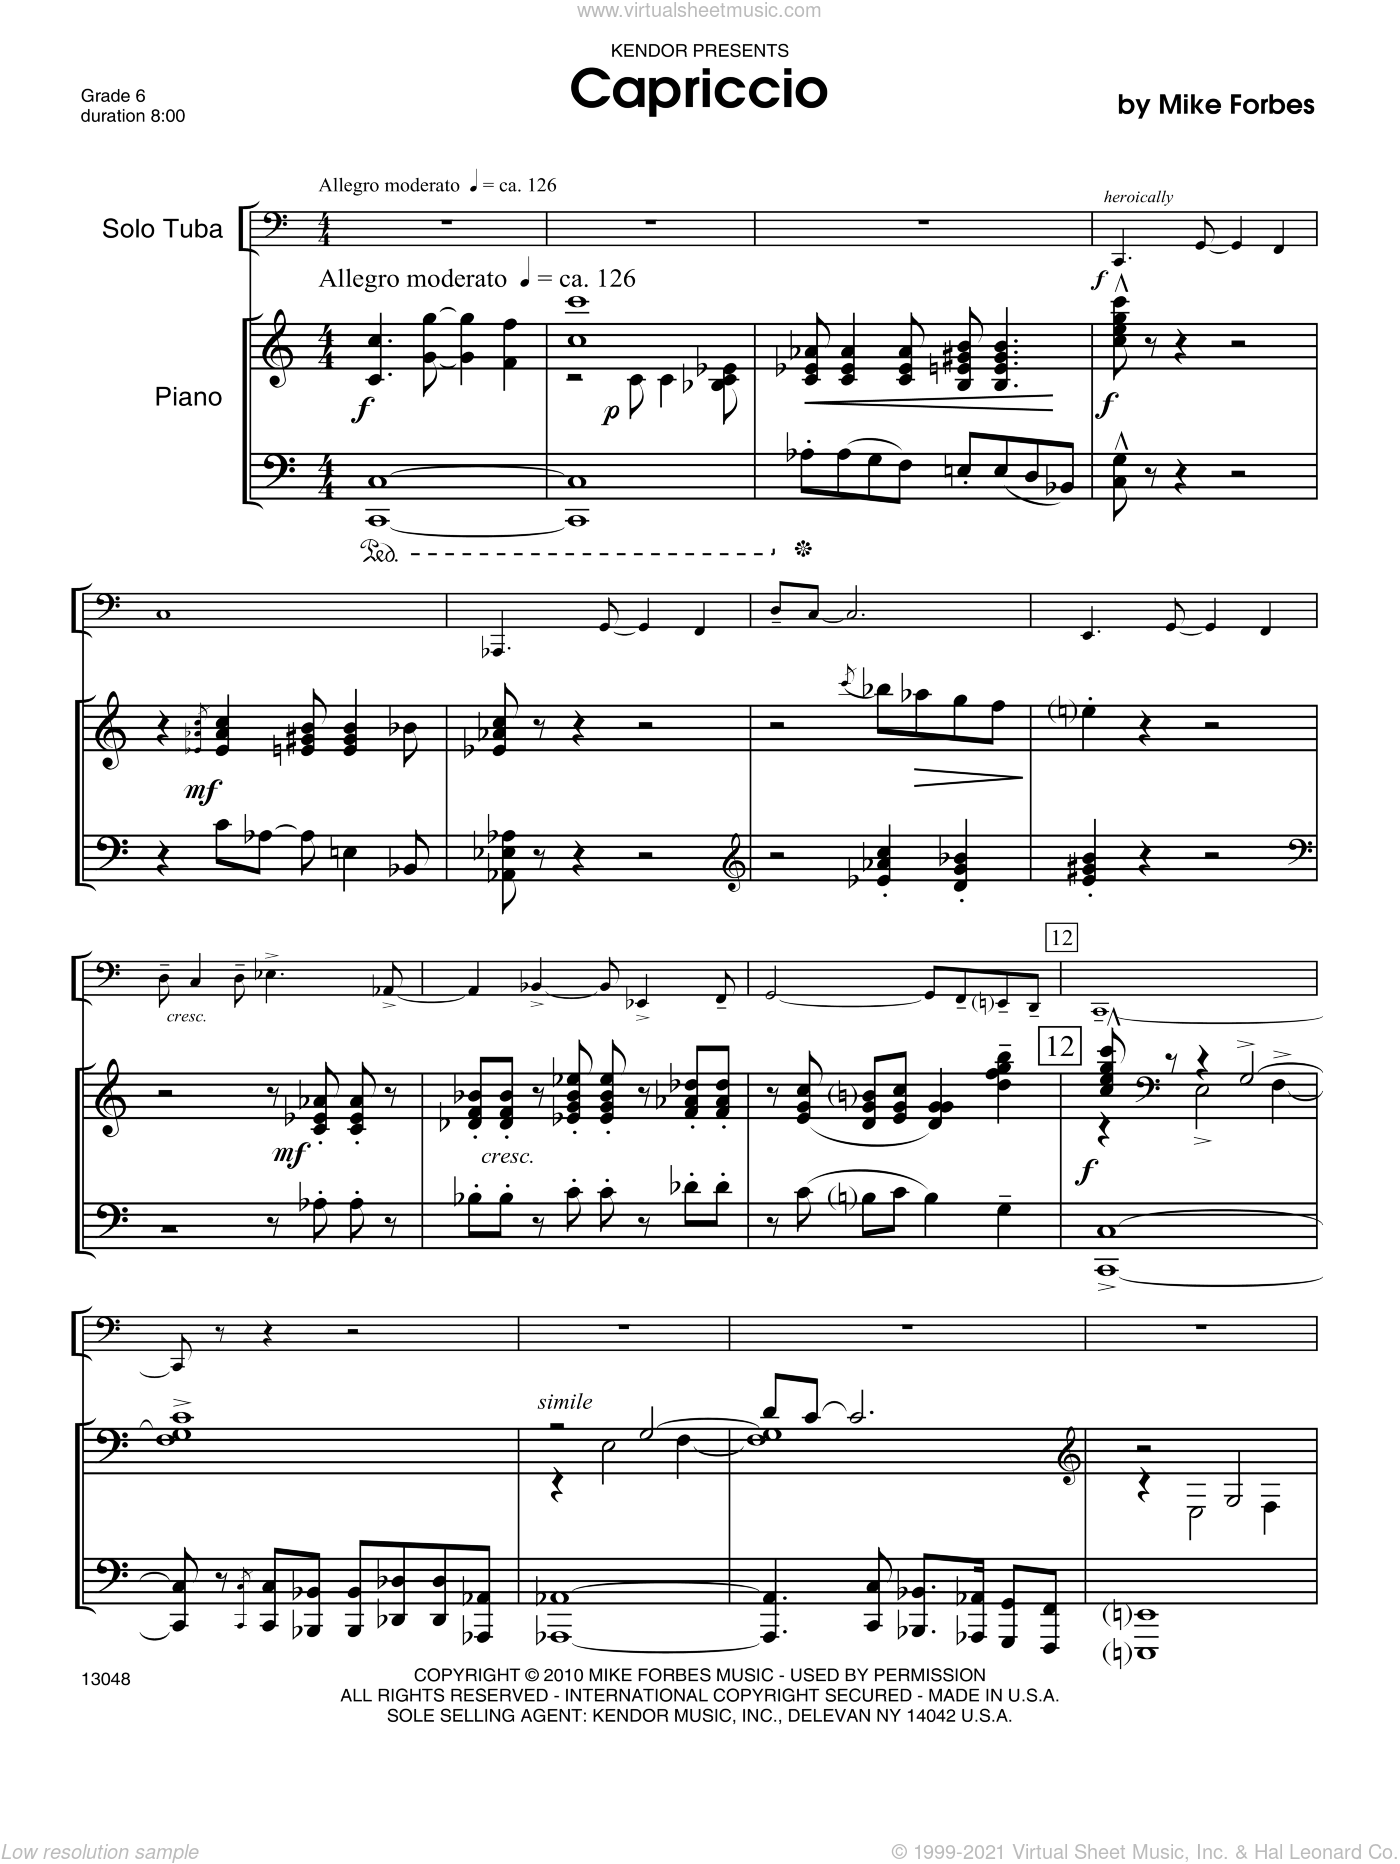 Capriccio sheet music for tuba and piano (piano/score) by Forbes